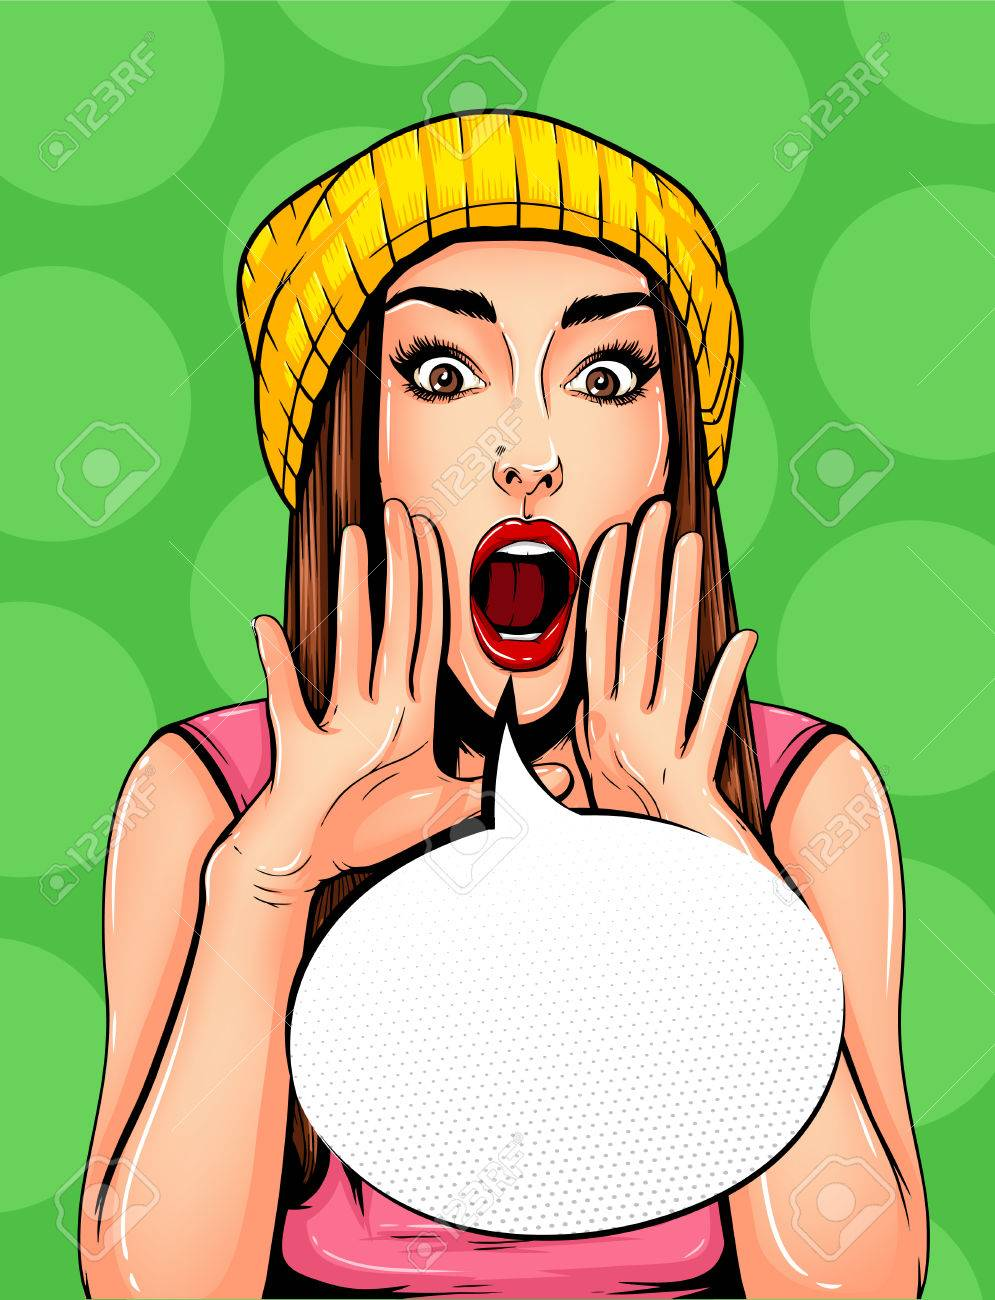 Pop Art Vintage advertising poster comic girl with speech bubble. Pretty girl announcing, telling a secret, shouting or yelling vector illustration - 68870394